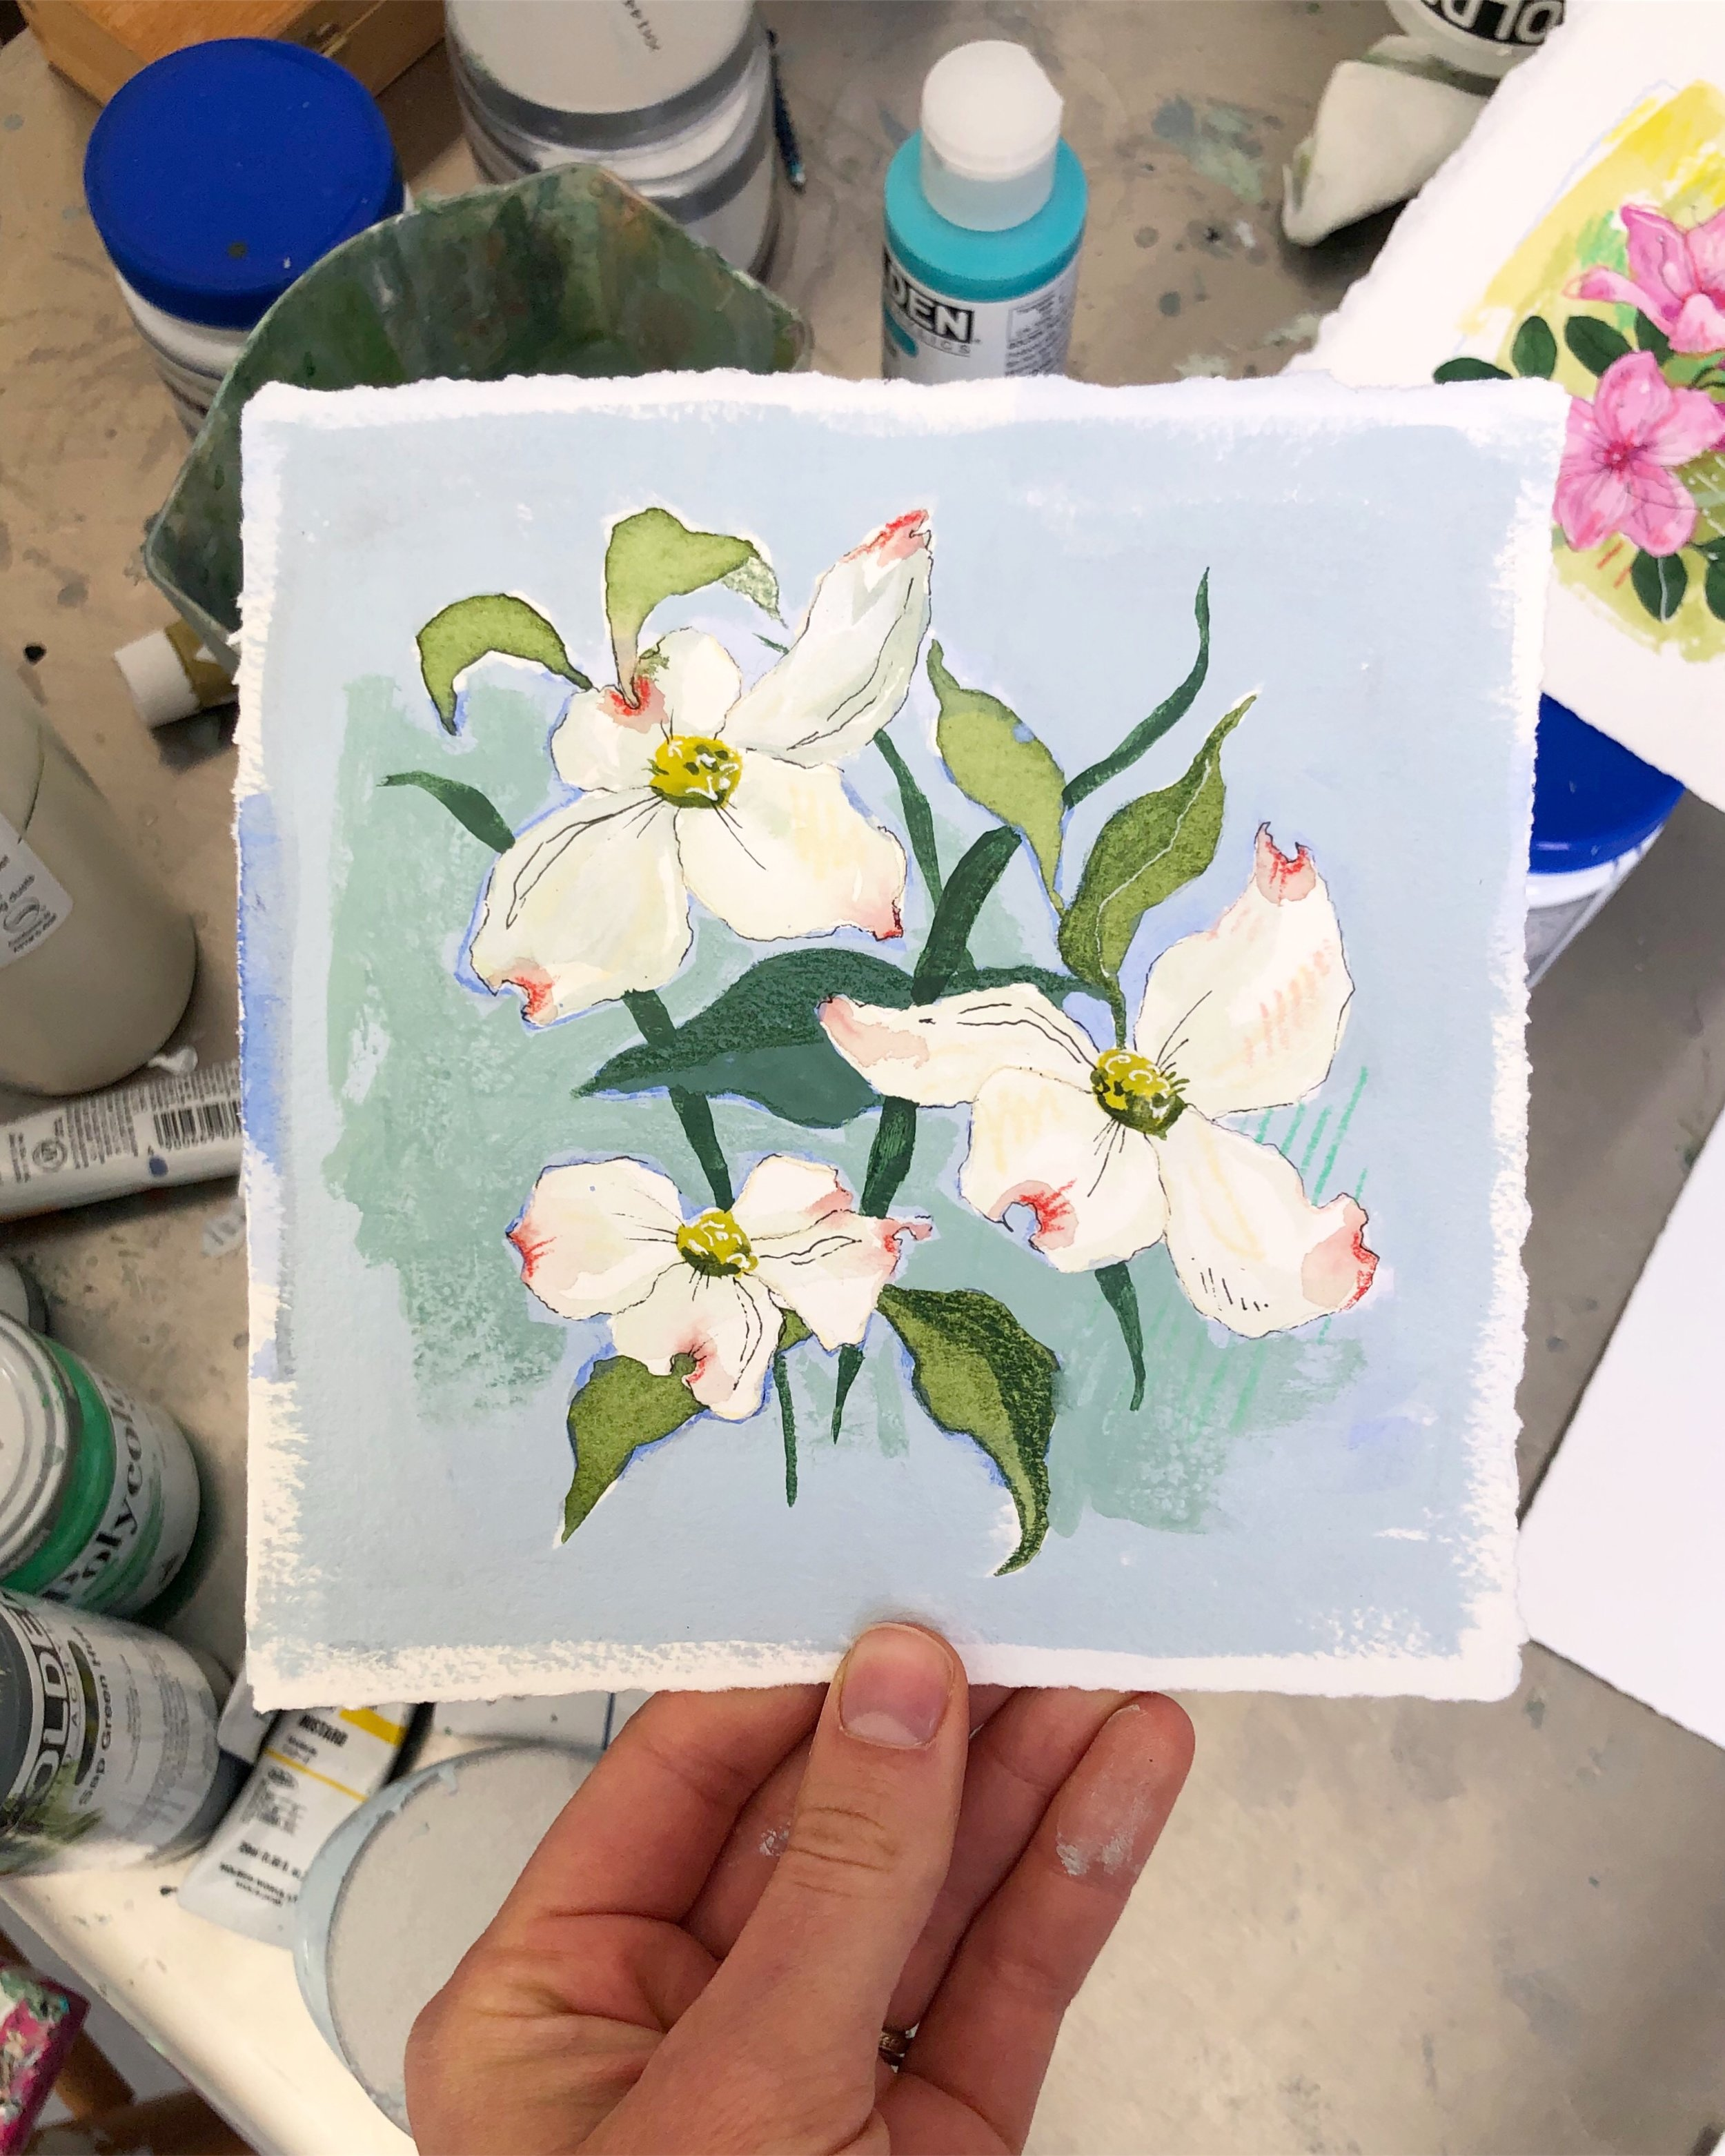 The first Dogwood to inspire the Abstract Botanical series, coming May 2nd!